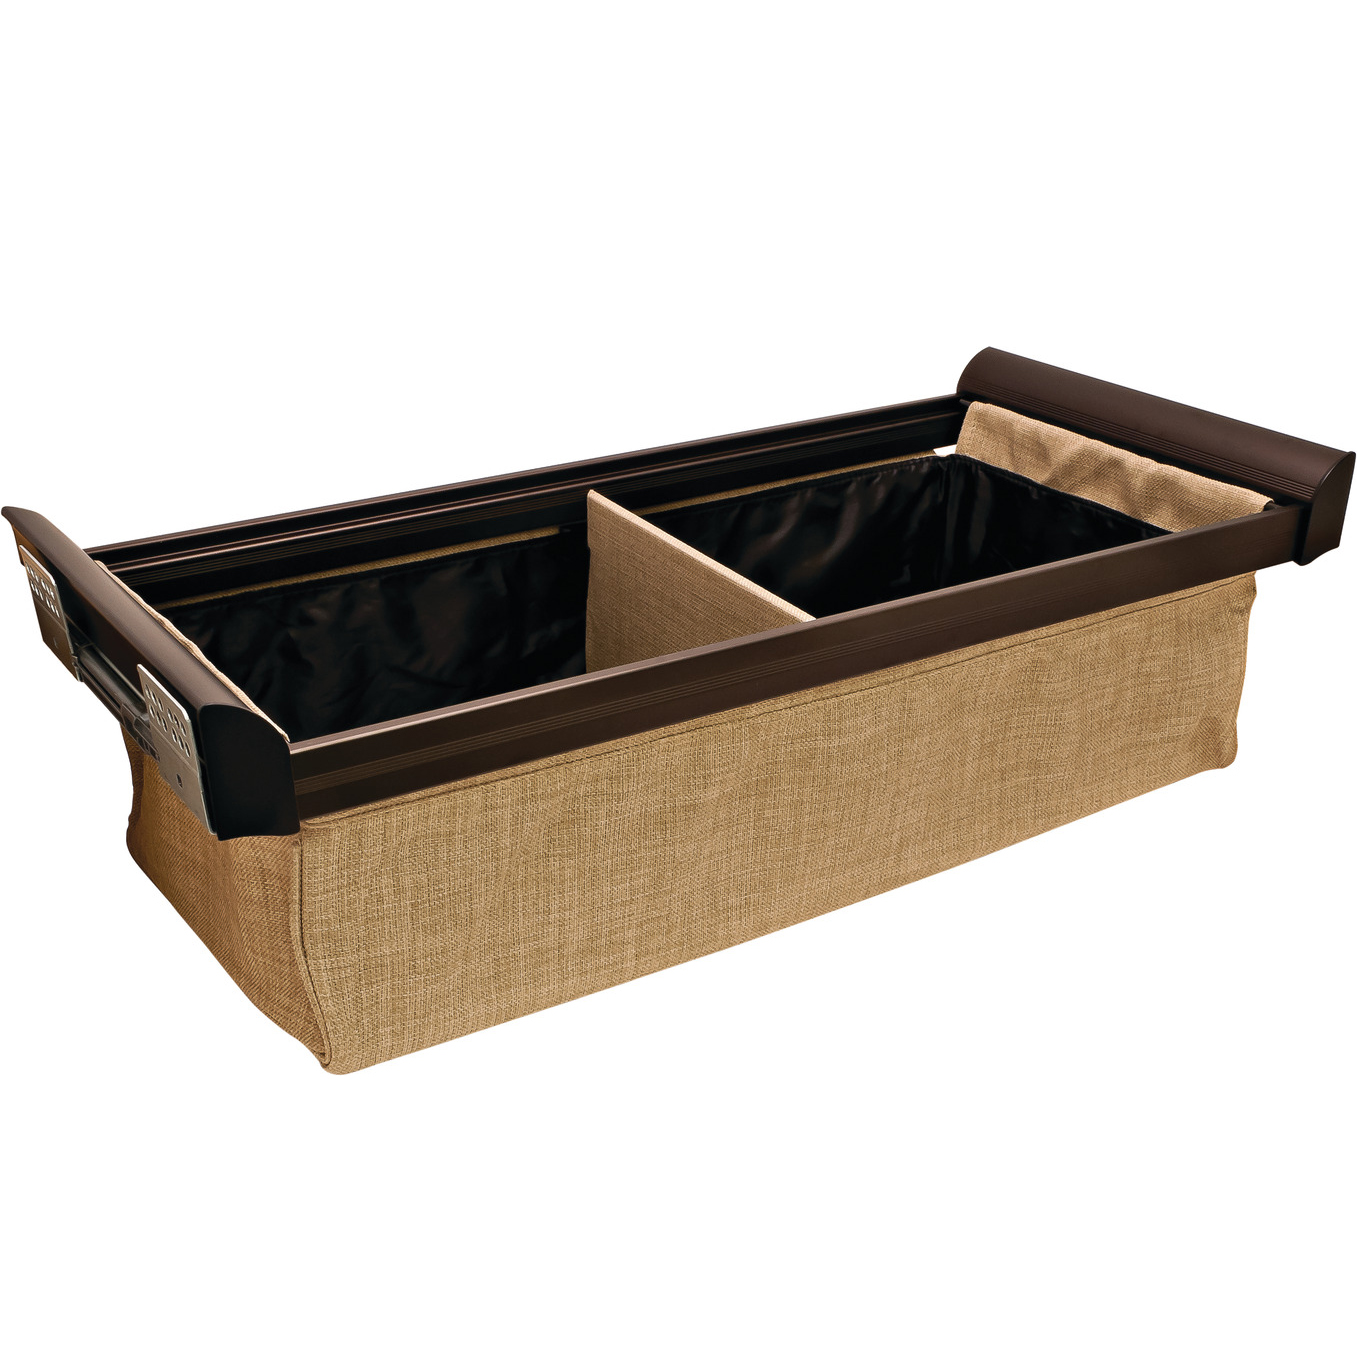 Engage Bronze Deep Drawer 18 Inches with 1 Divider